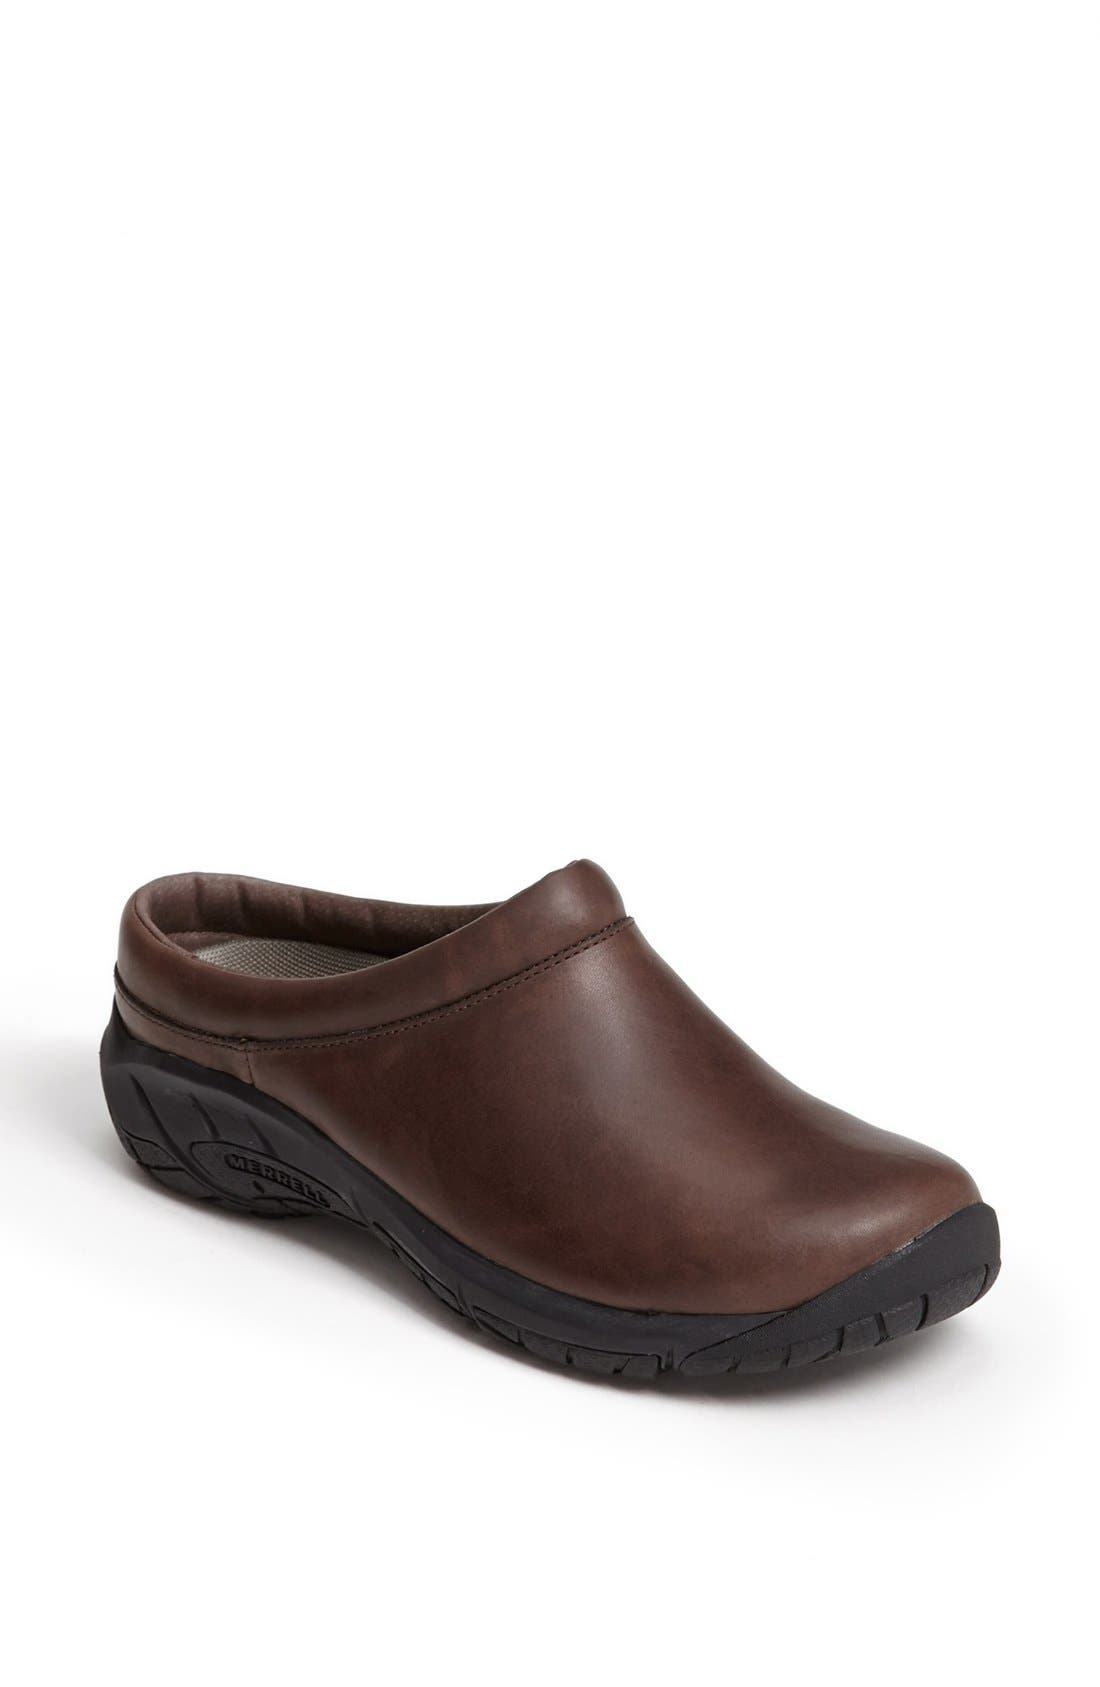 Main Image - Merrell 'Encore Nova' Slip-On